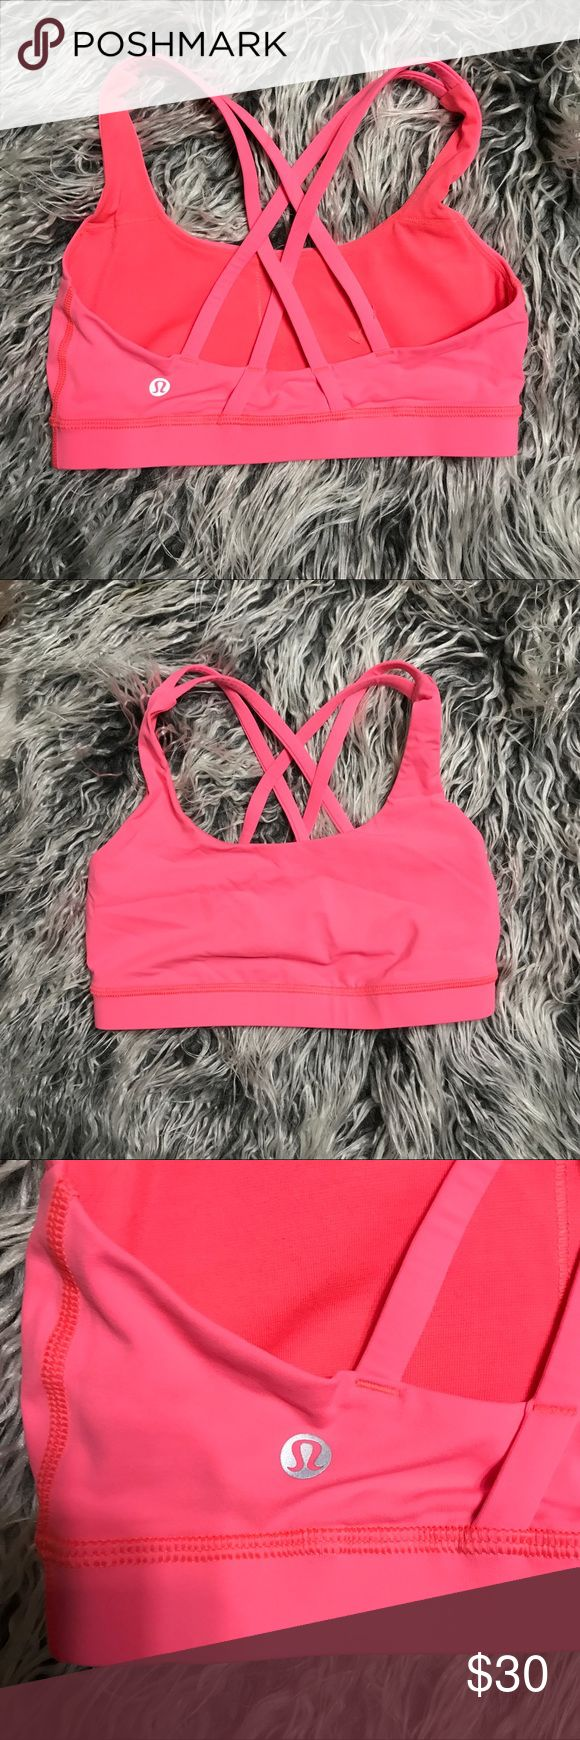 Lululemon Bra Used but in excellent condition. No rips or stains. Inserts Not included. Size 6 lululemon athletica Tops